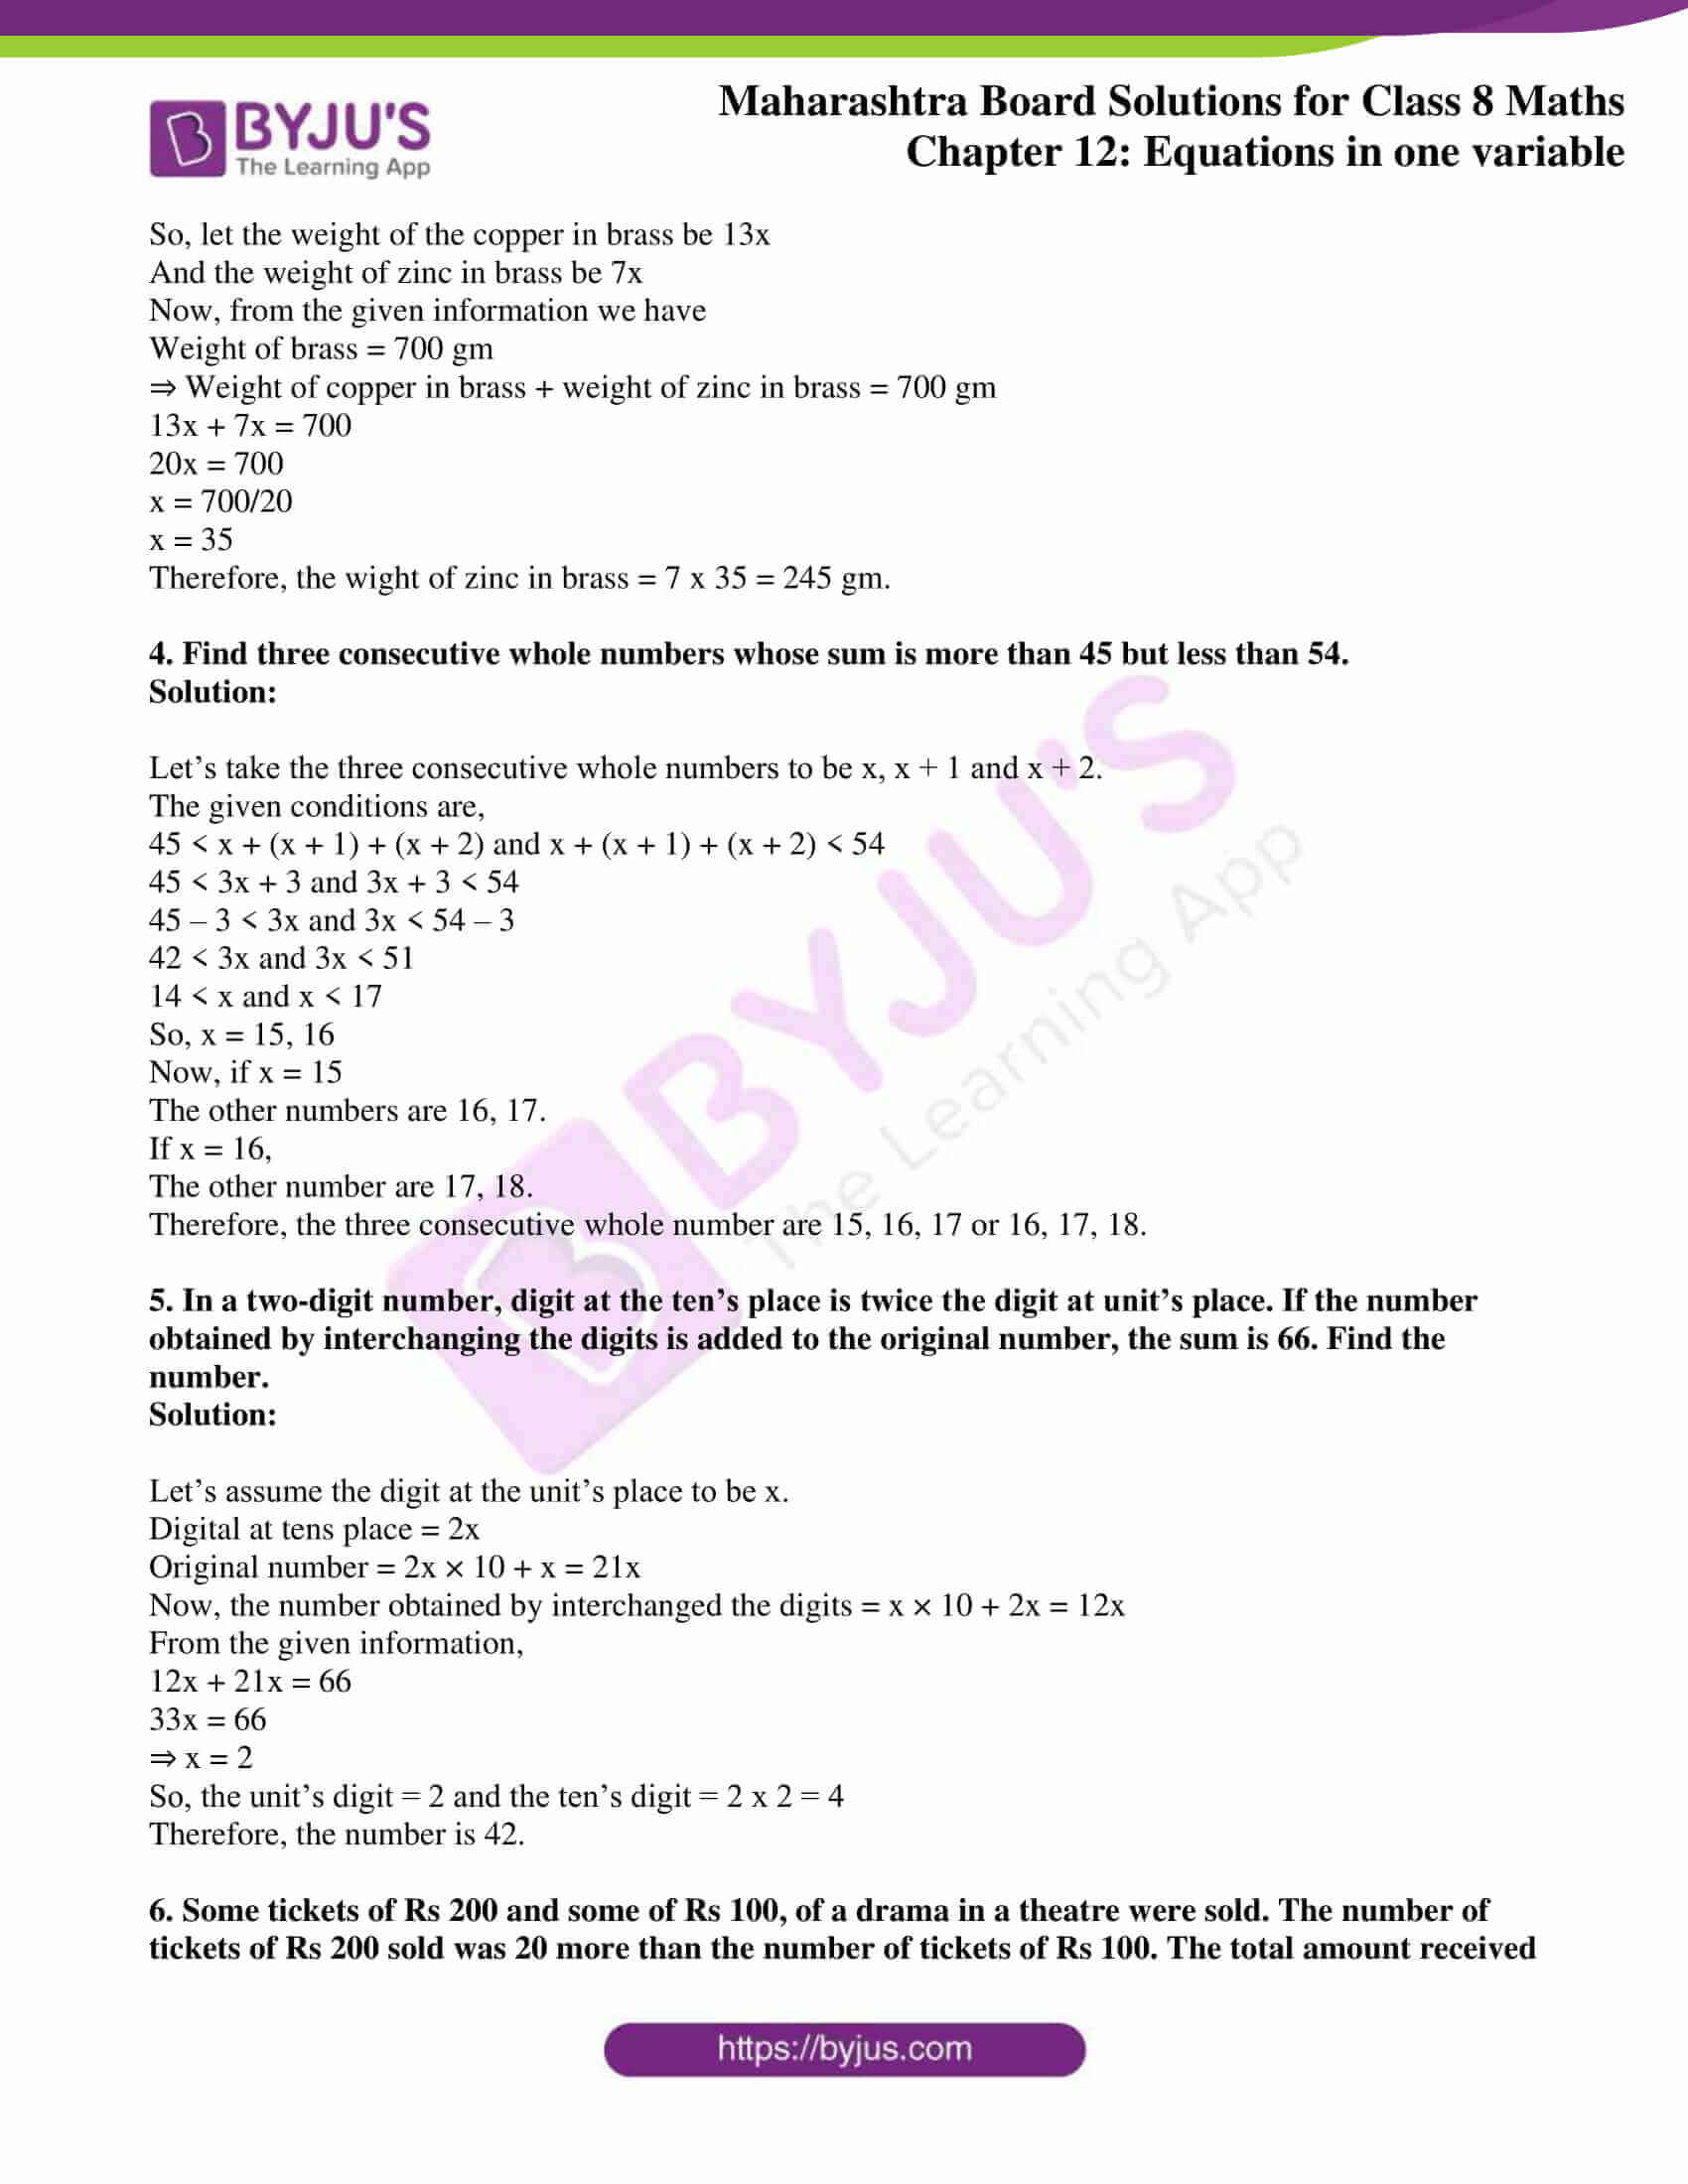 msbshse sol for class 8 maths chapter 12 08